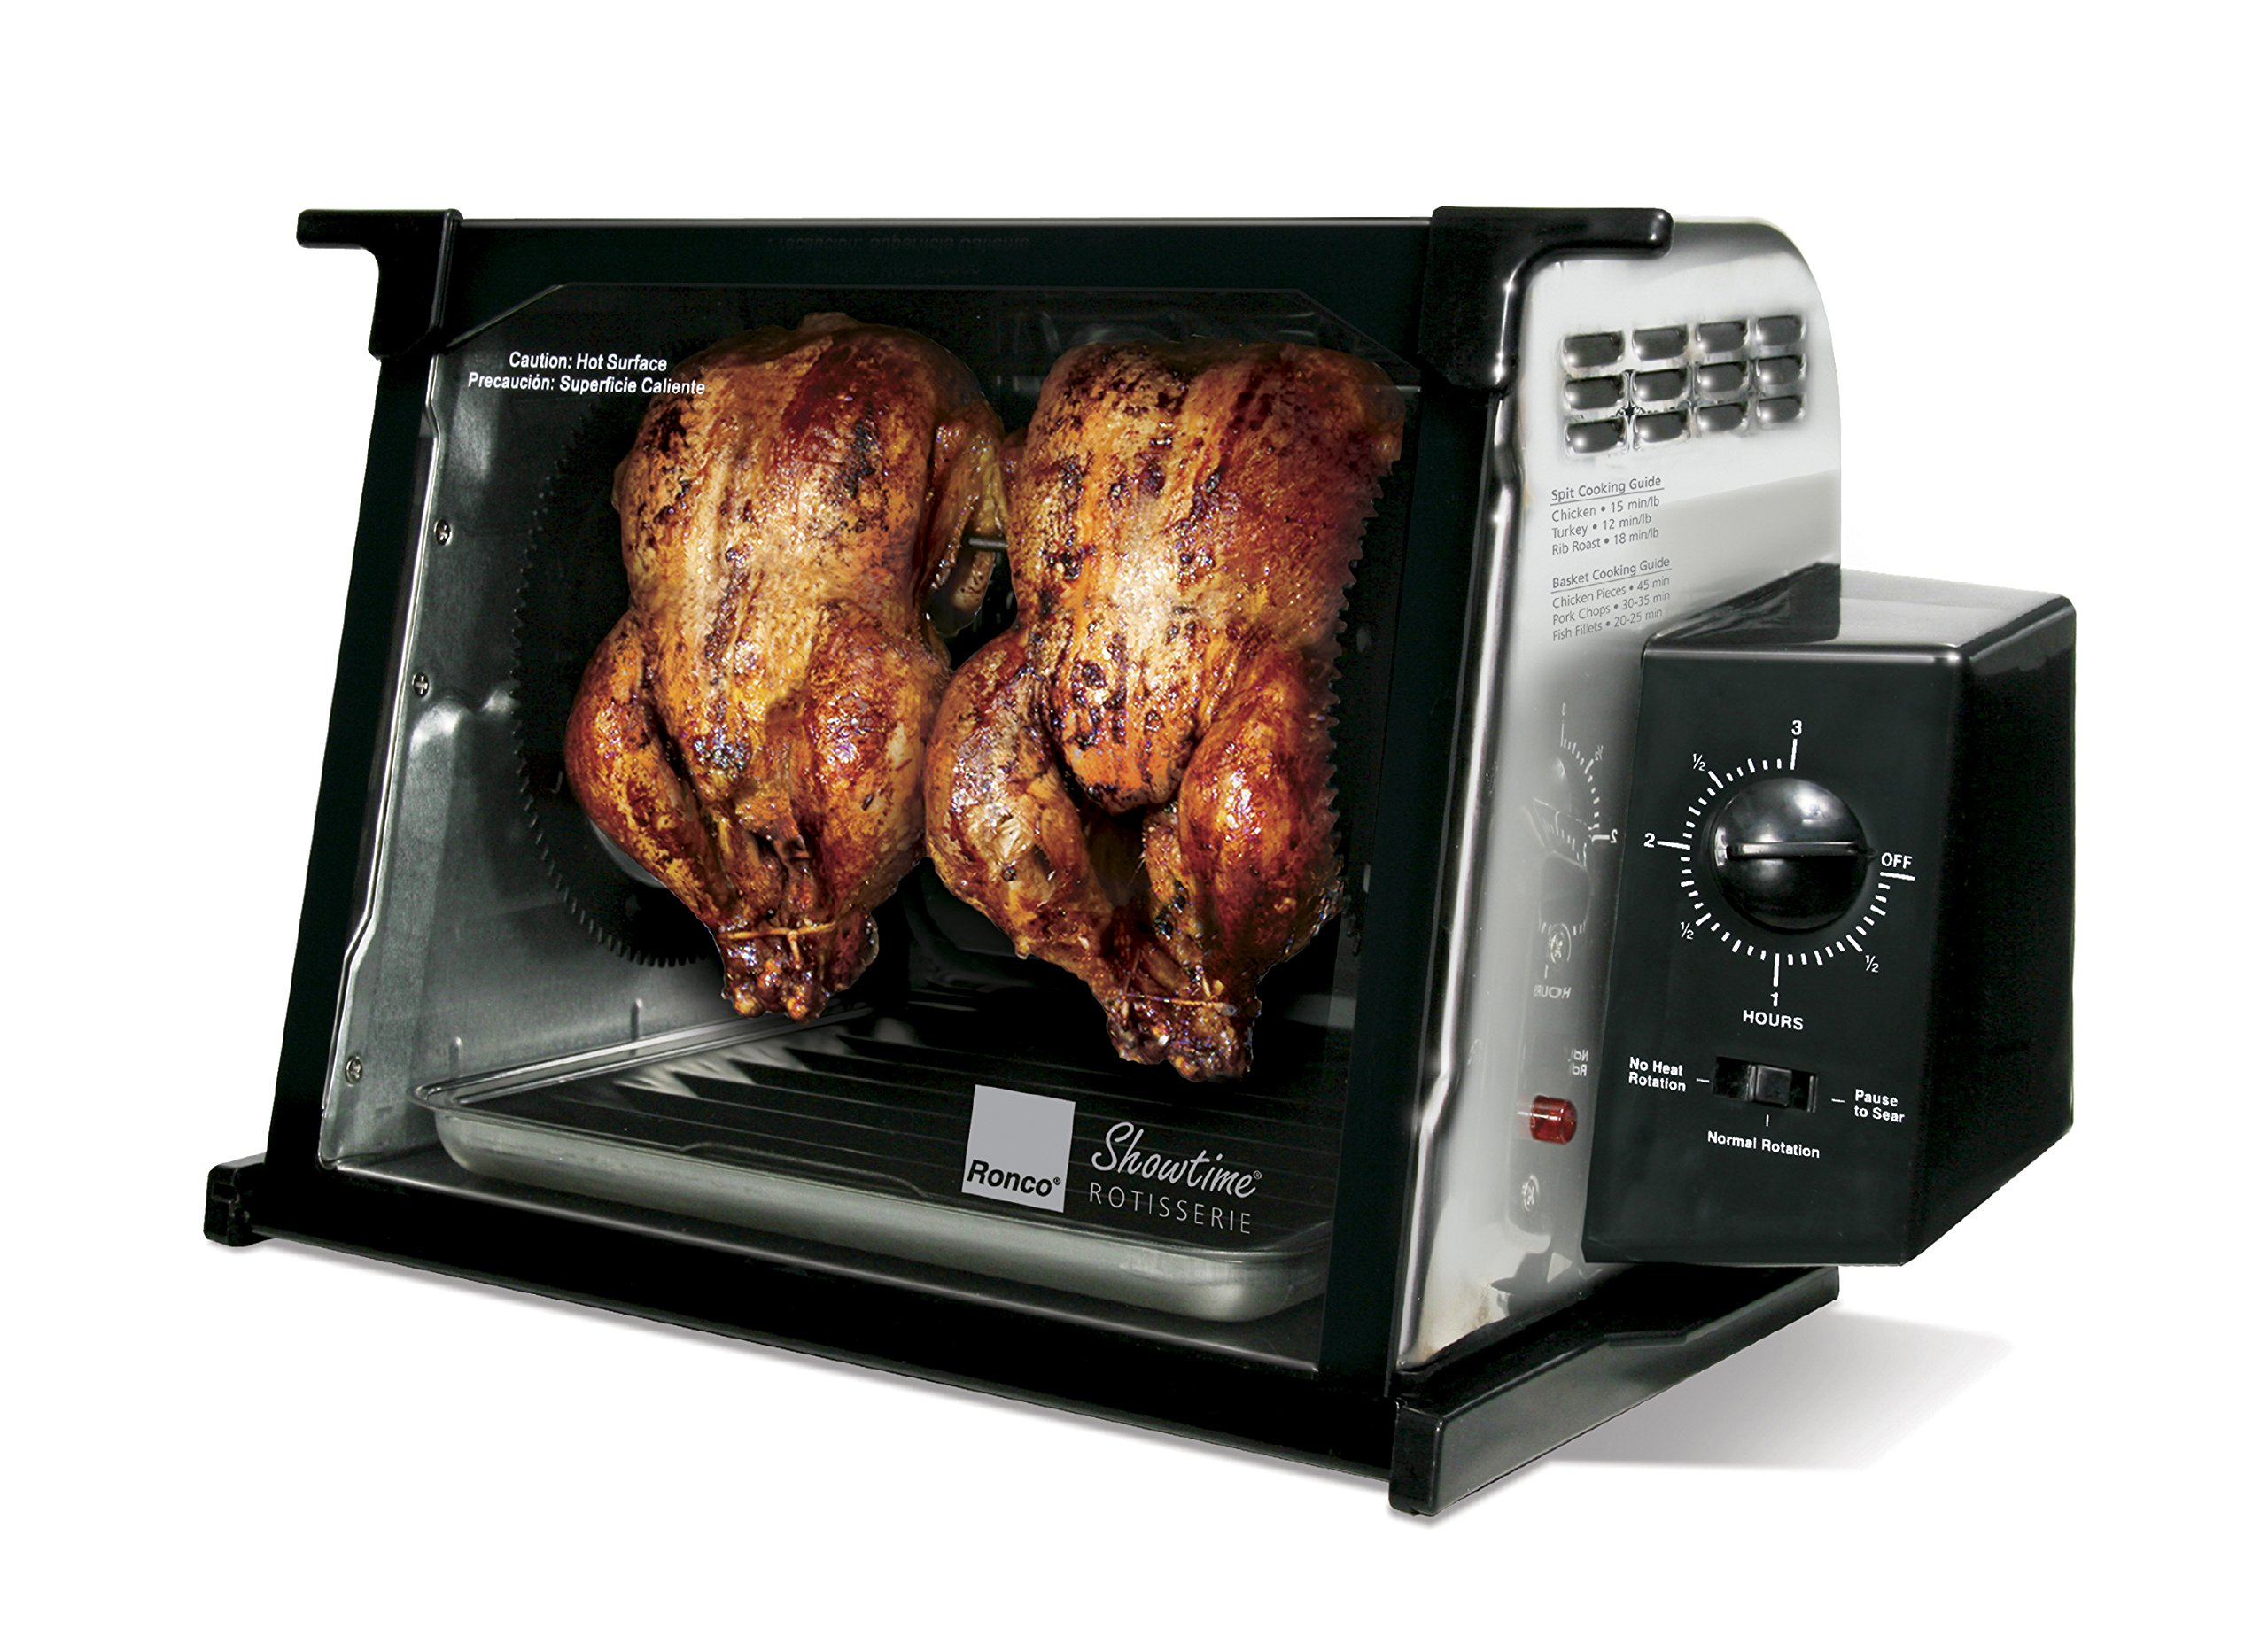 Ronco 4000 Series Rotisserie, Stainless Steel by Ronco